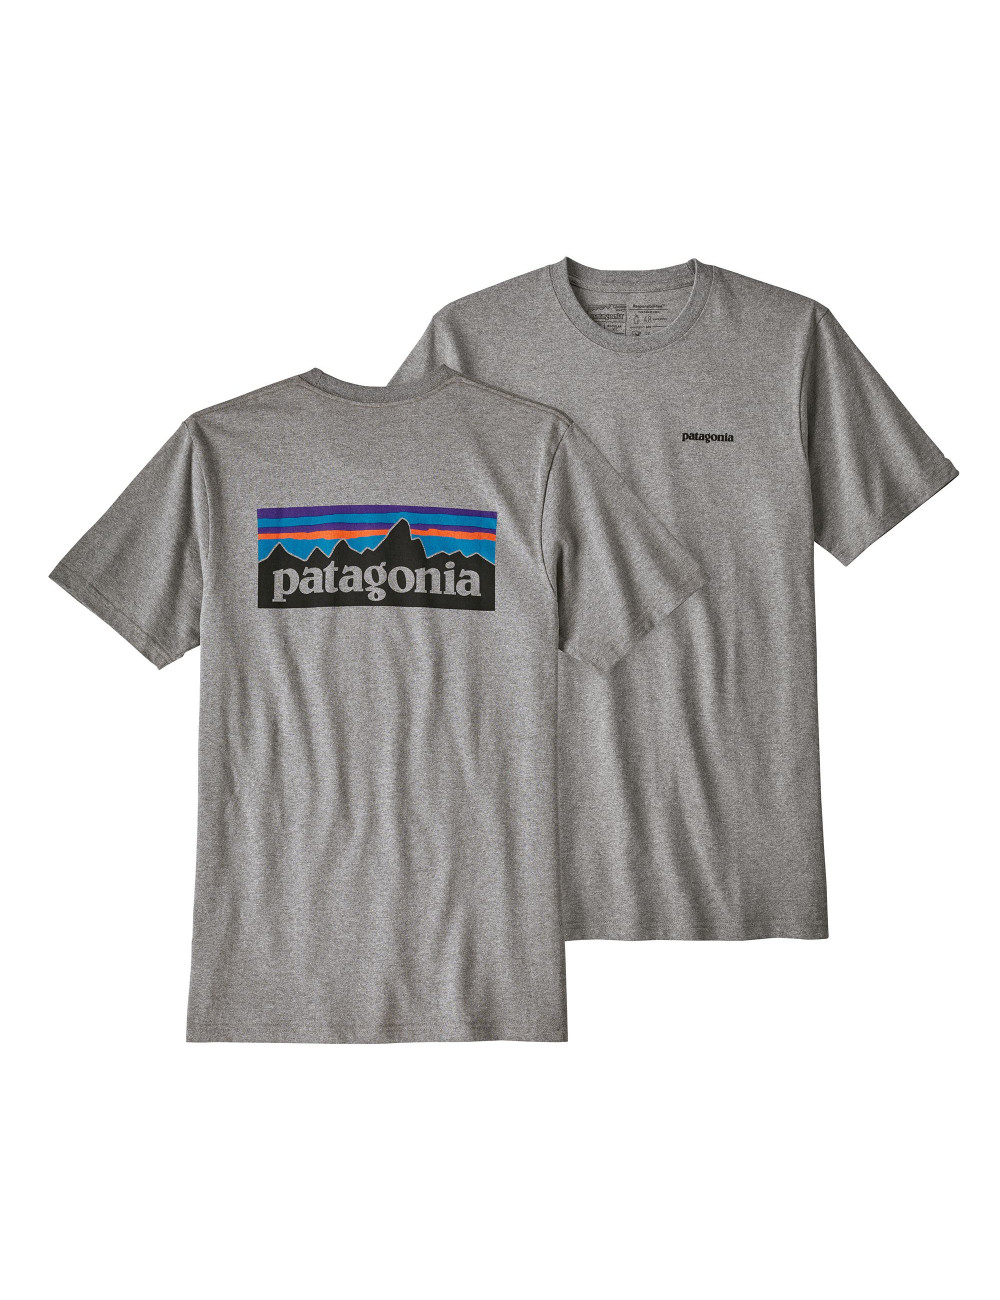 Patagonia P-6 logo responsability tee - 39174 | Shapestore.it